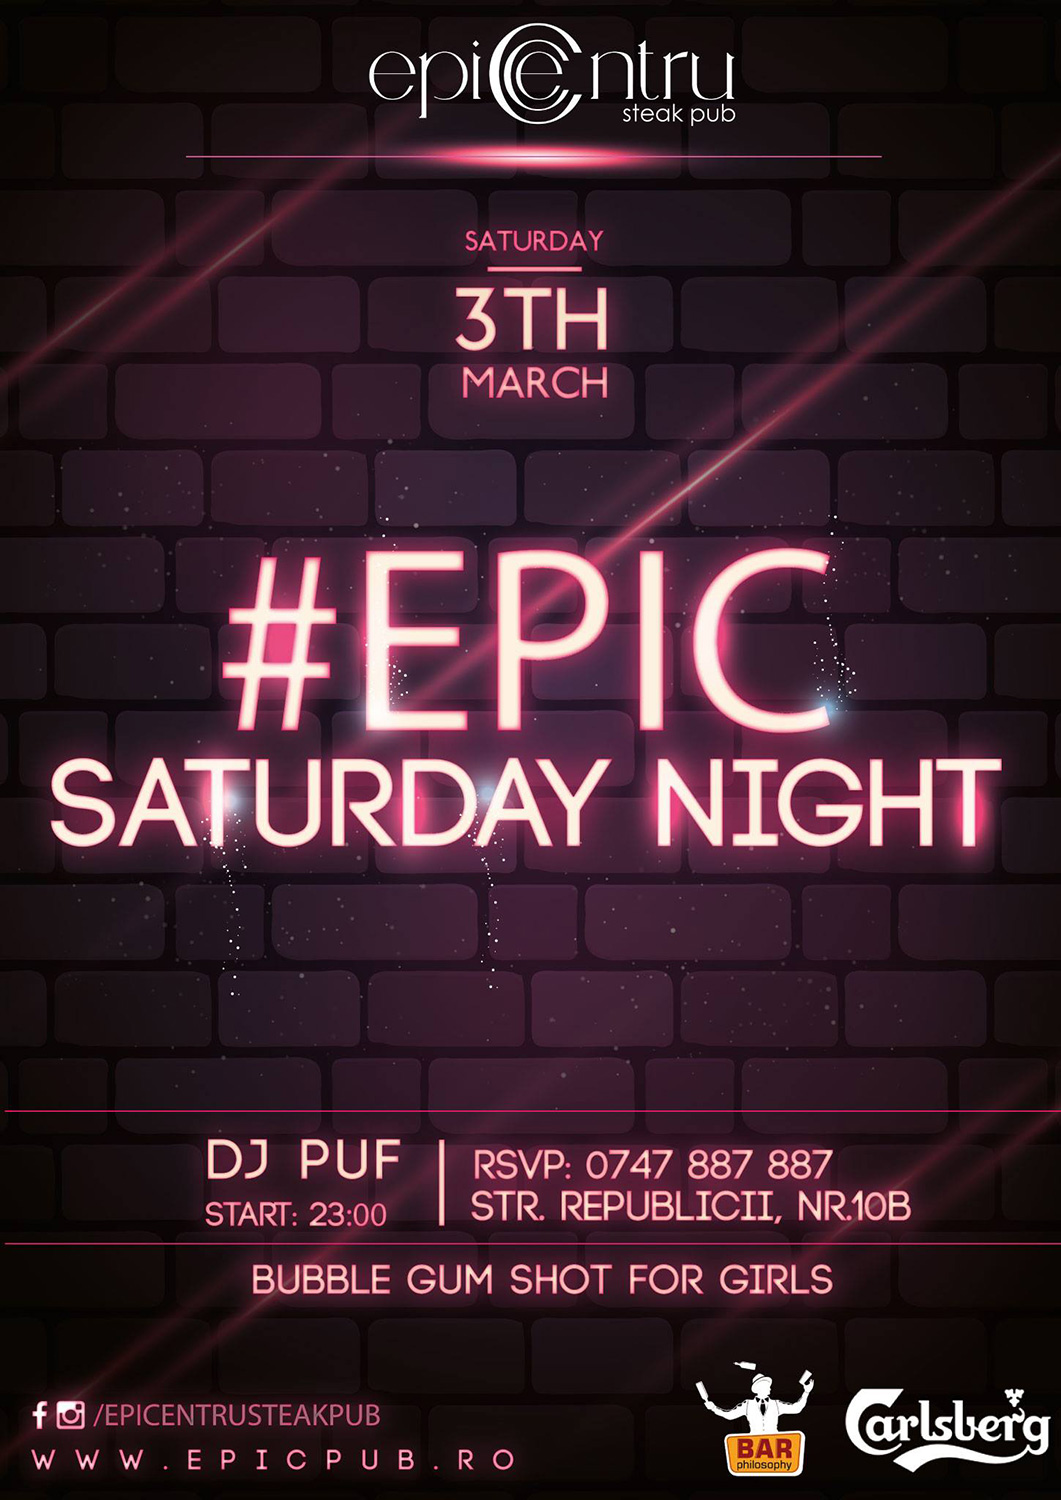 #Epic Saturday Night